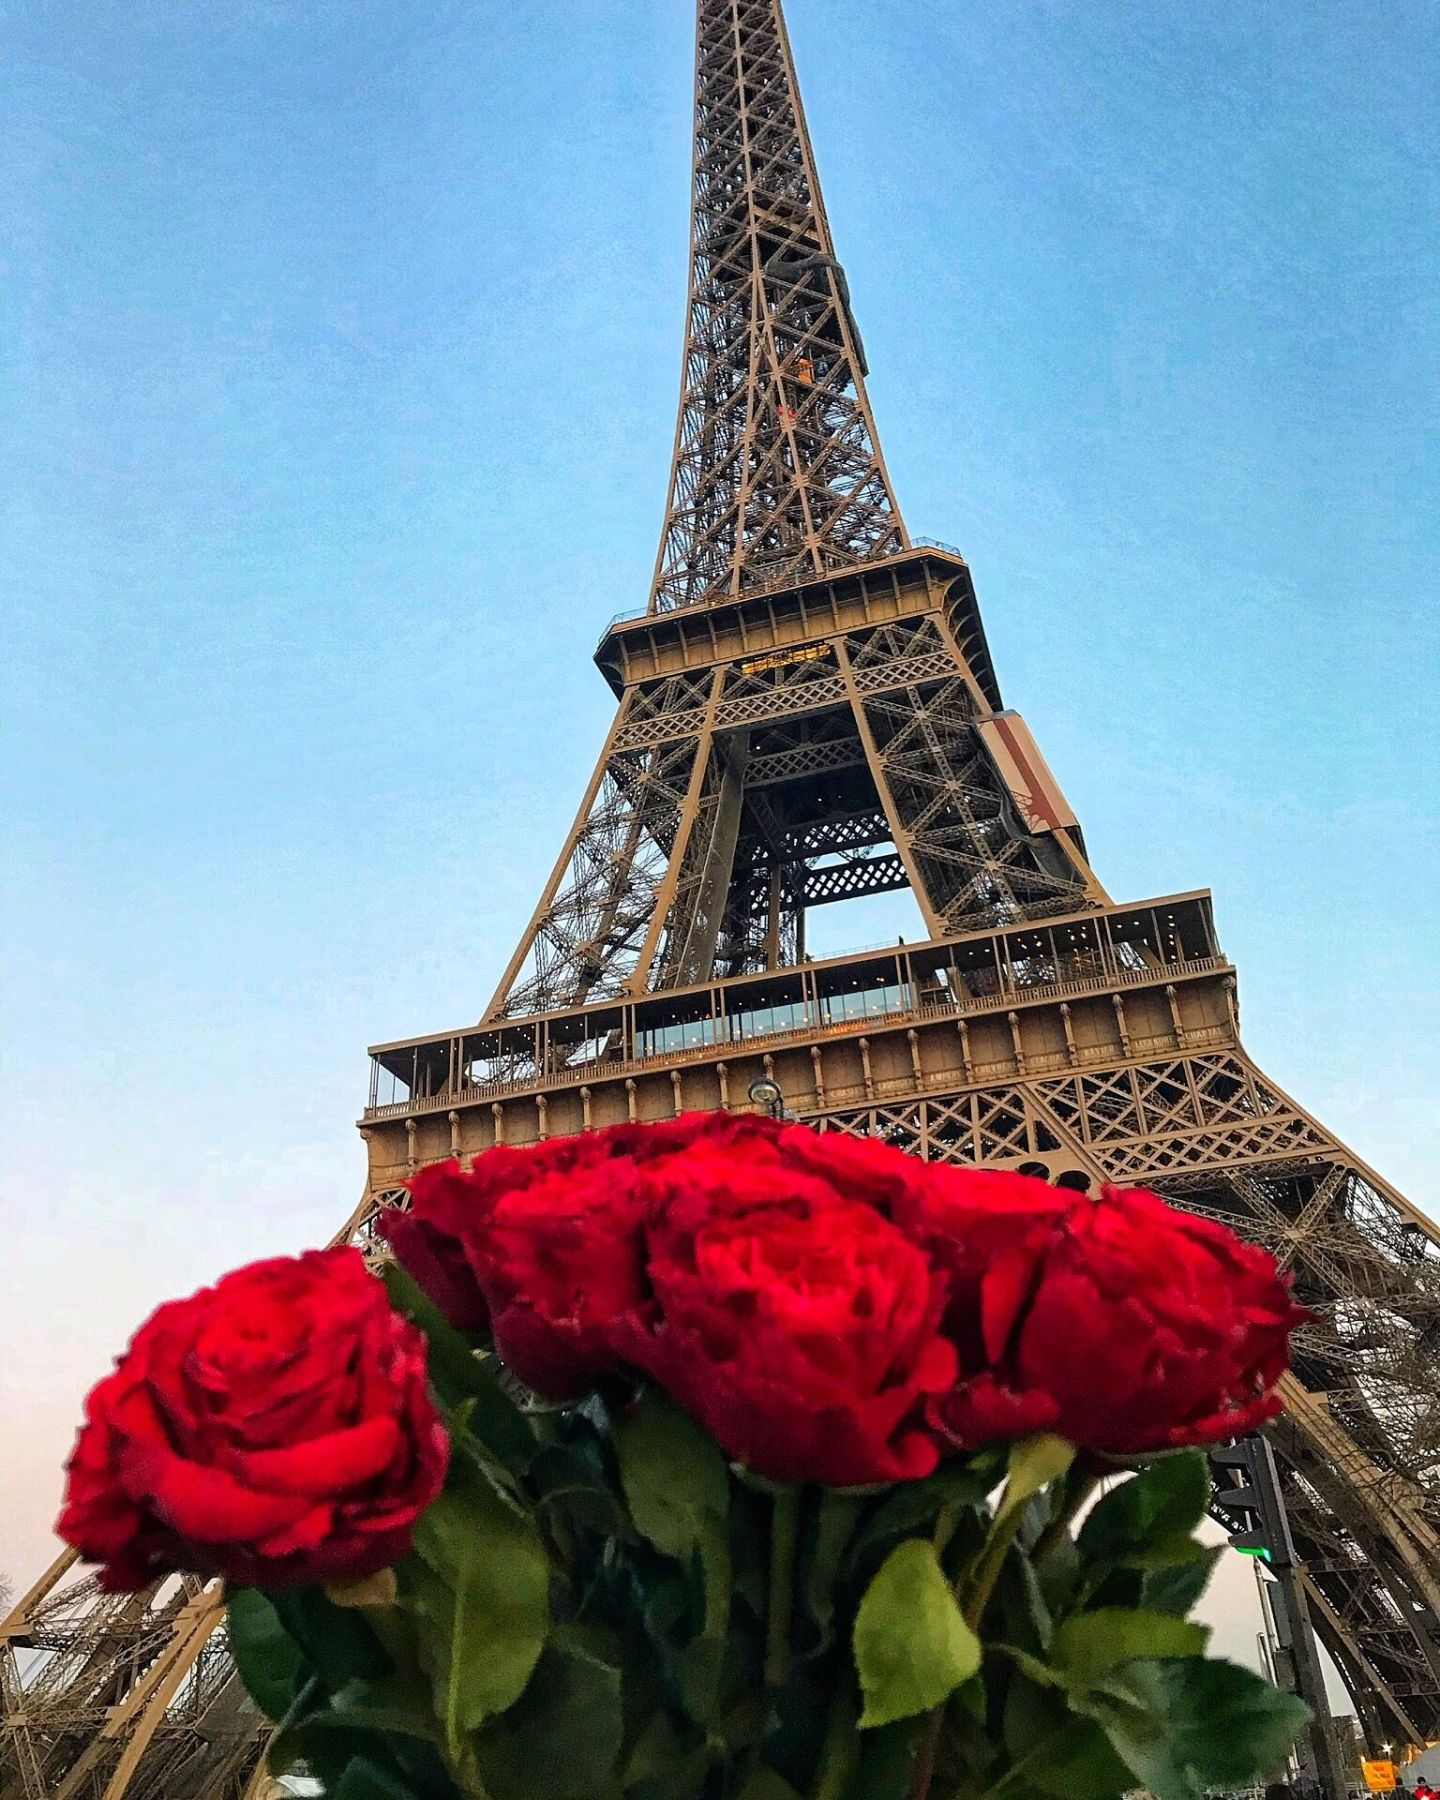 Red roses under The Eiffel Tower